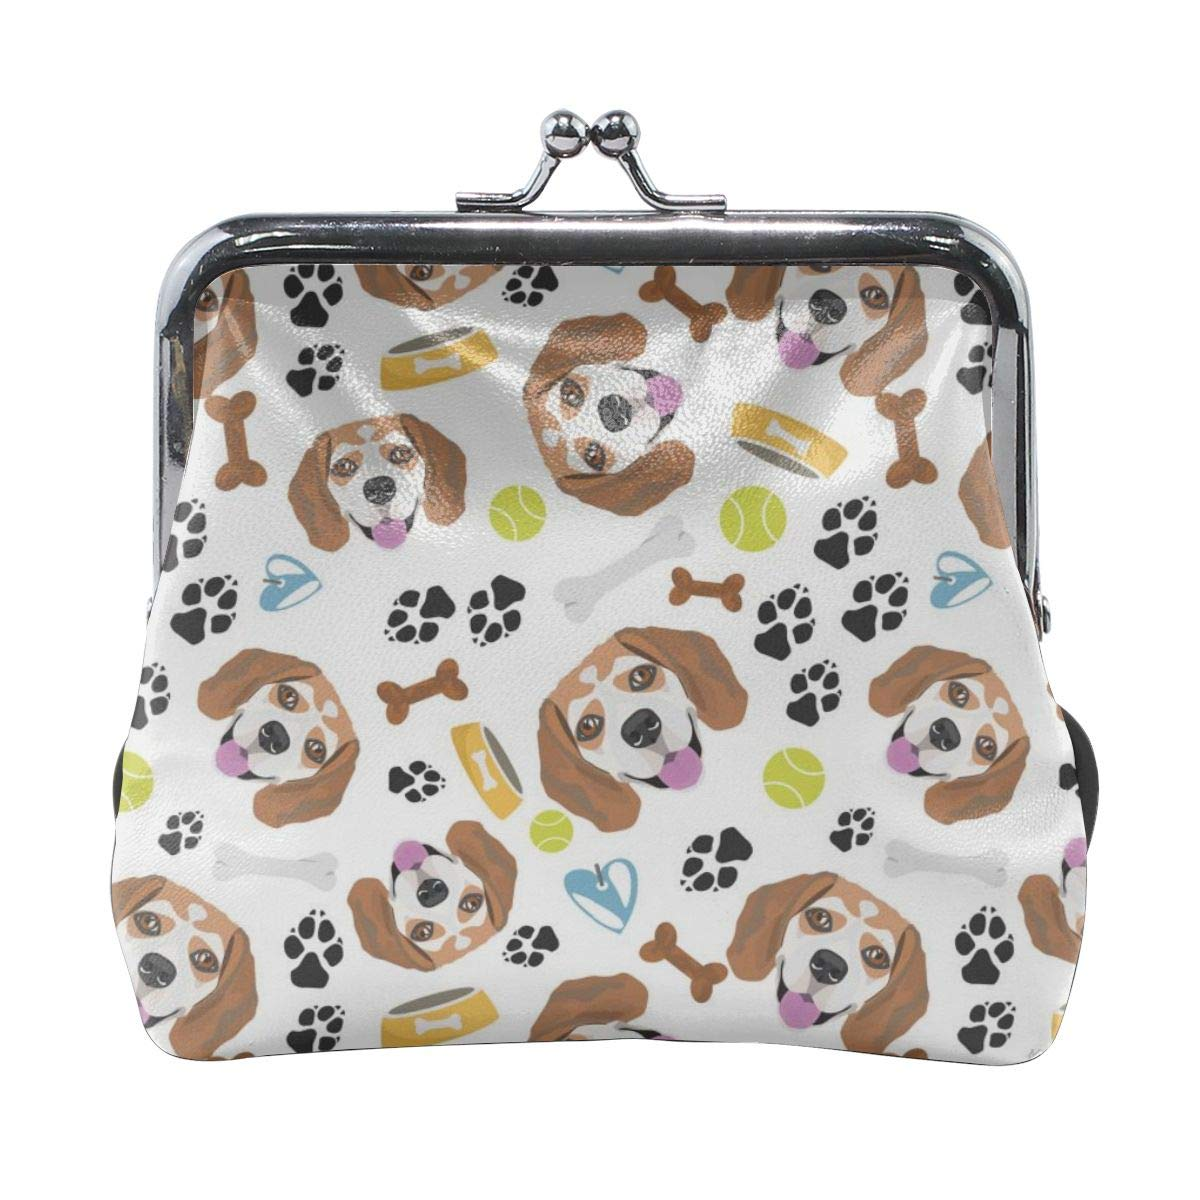 Smiling Dog Beagle Cute Buckle Coin Purses Buckle Buckle Change Purse Wallets